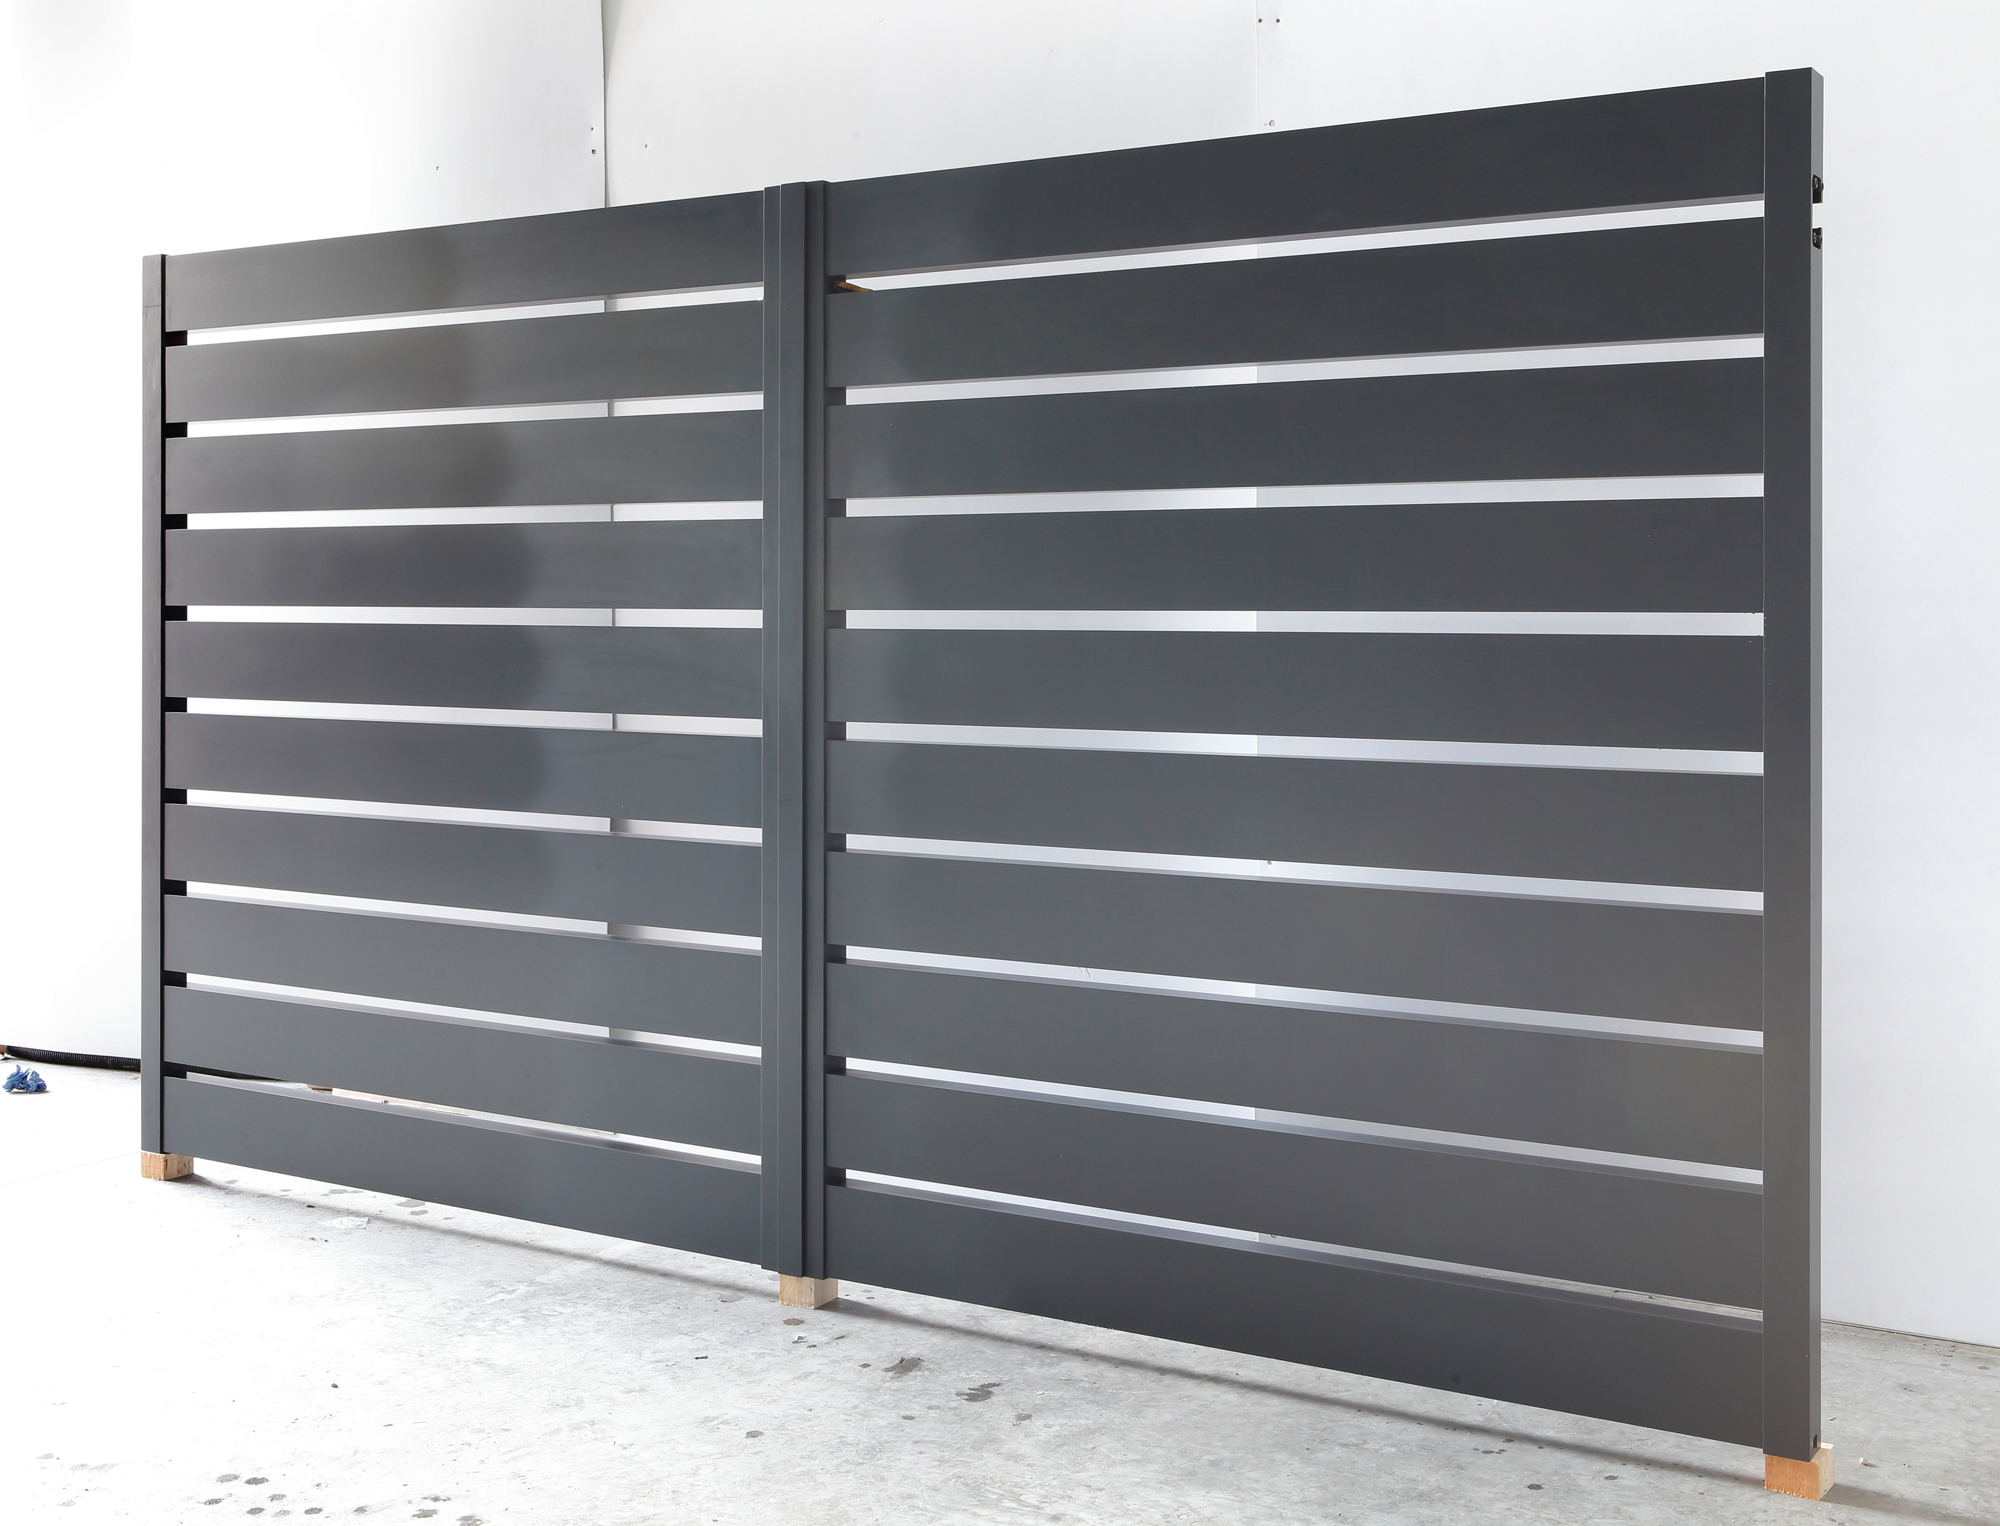 Aluminium Gates In Ral7016 Anthracite Grey After Finishing